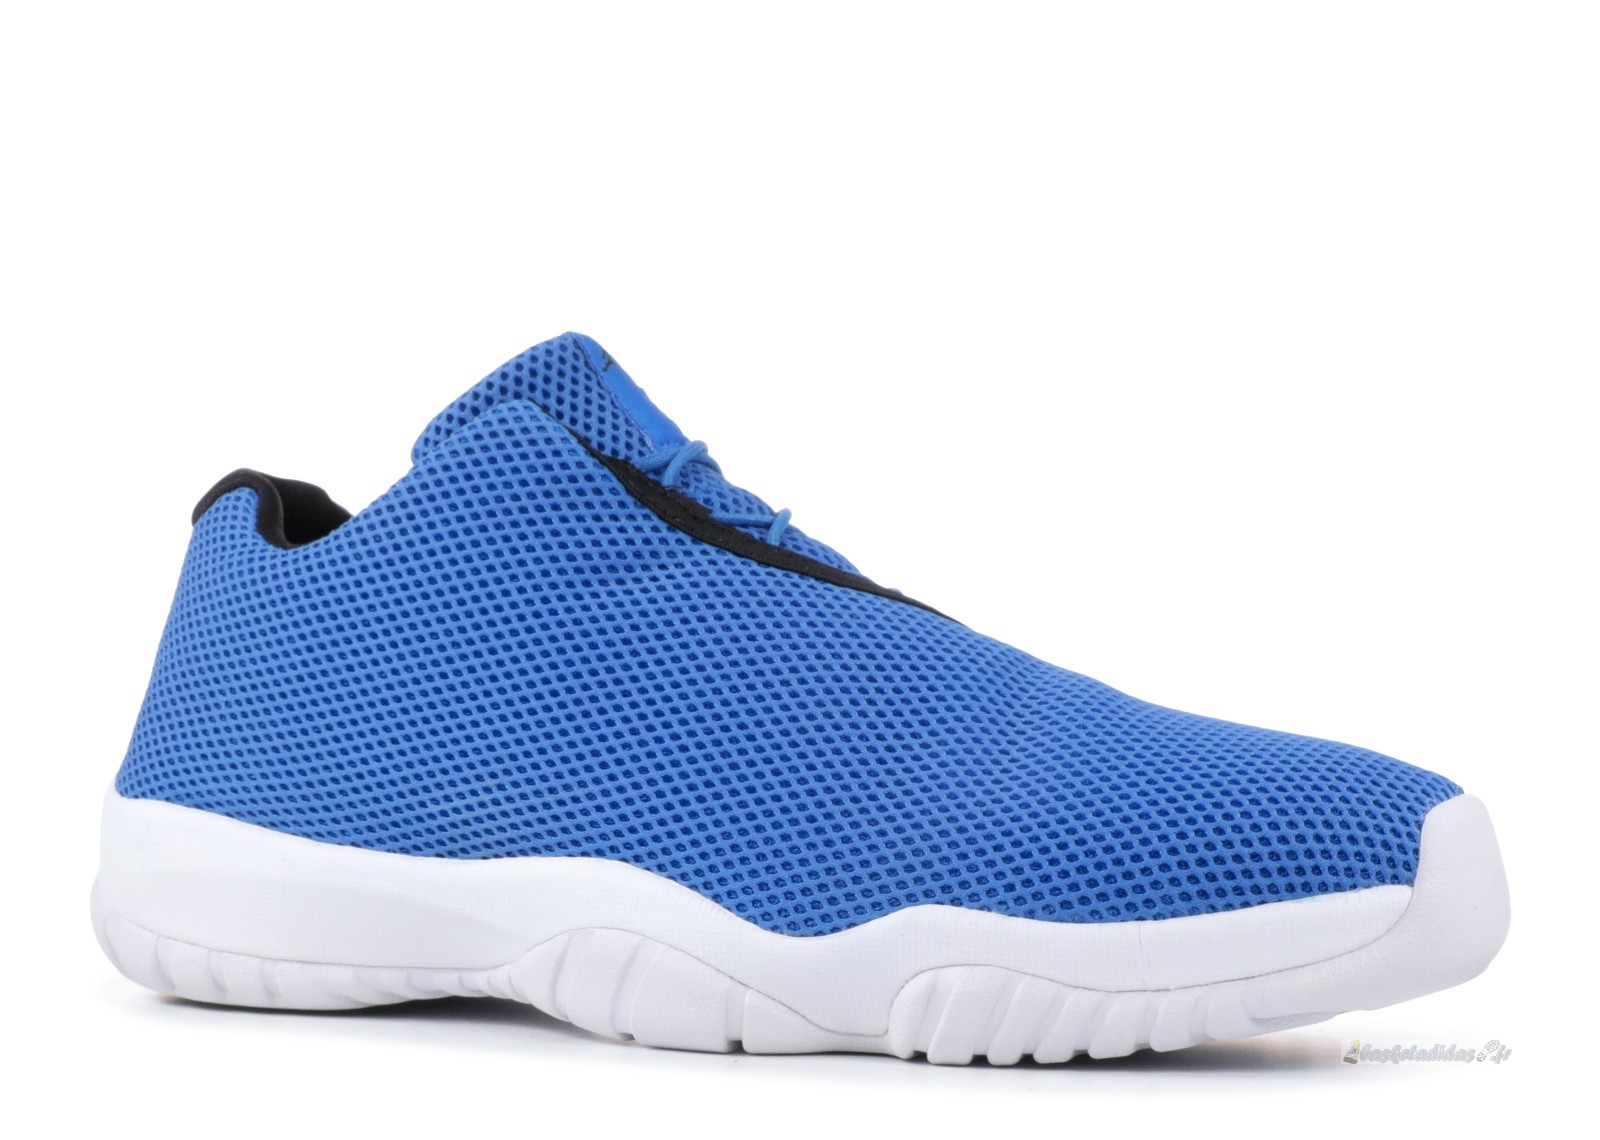 Chaussure de Basket Air Jordan Future Low Bleu Blanc 4 (718948-400)